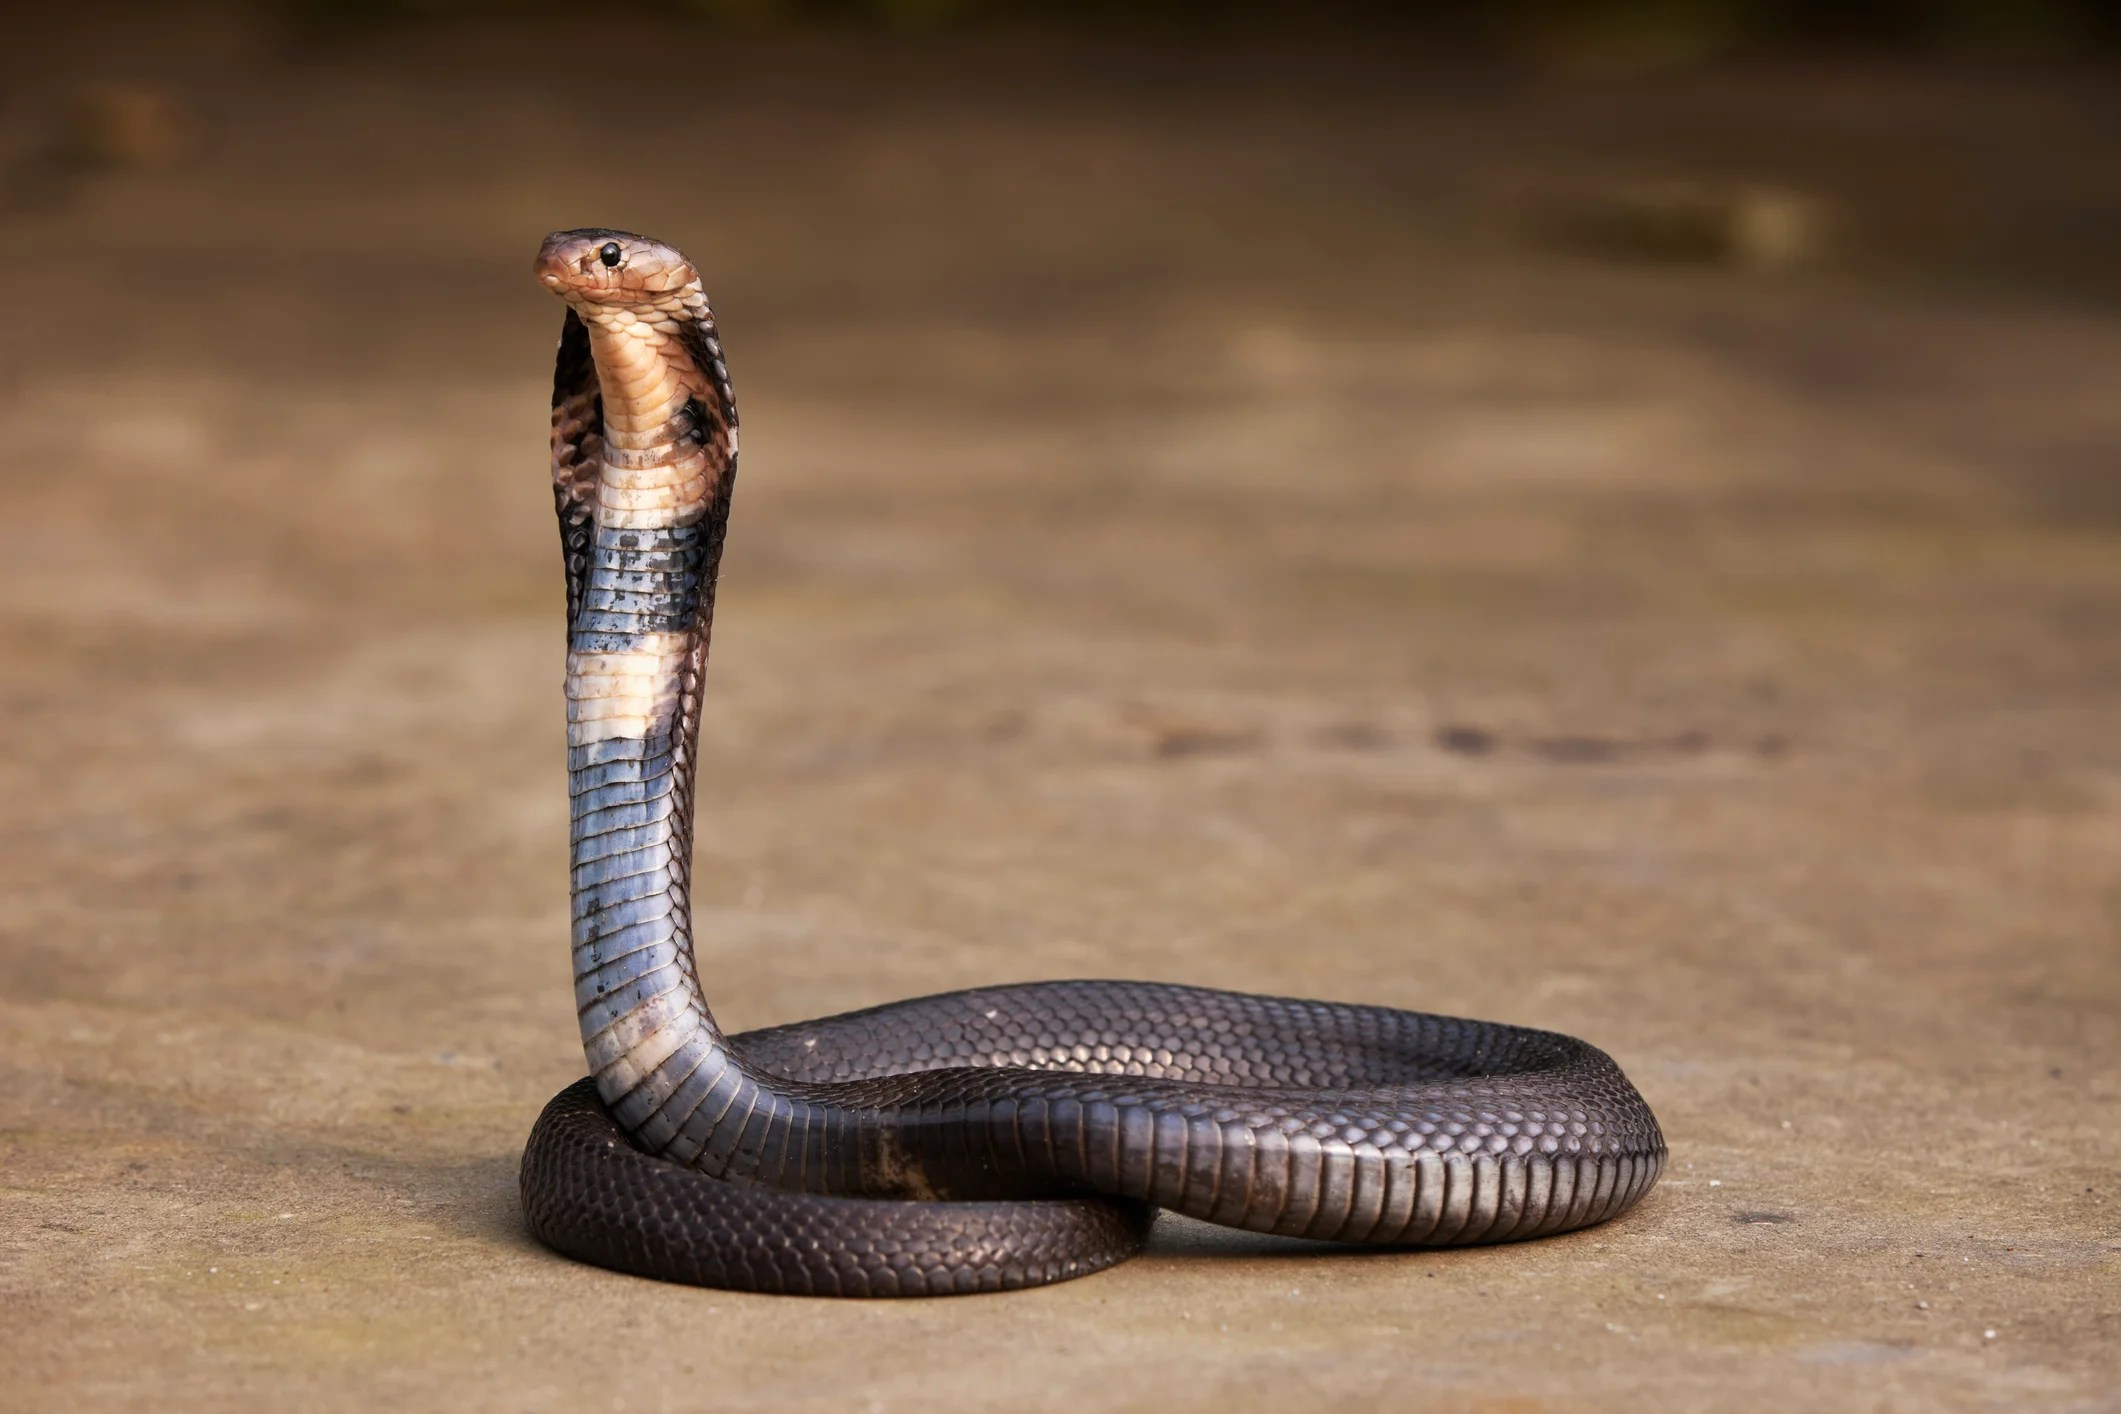 Snakes May Be the Unique Supply of the New Coronavirus Outbreak in China - Periodical 360